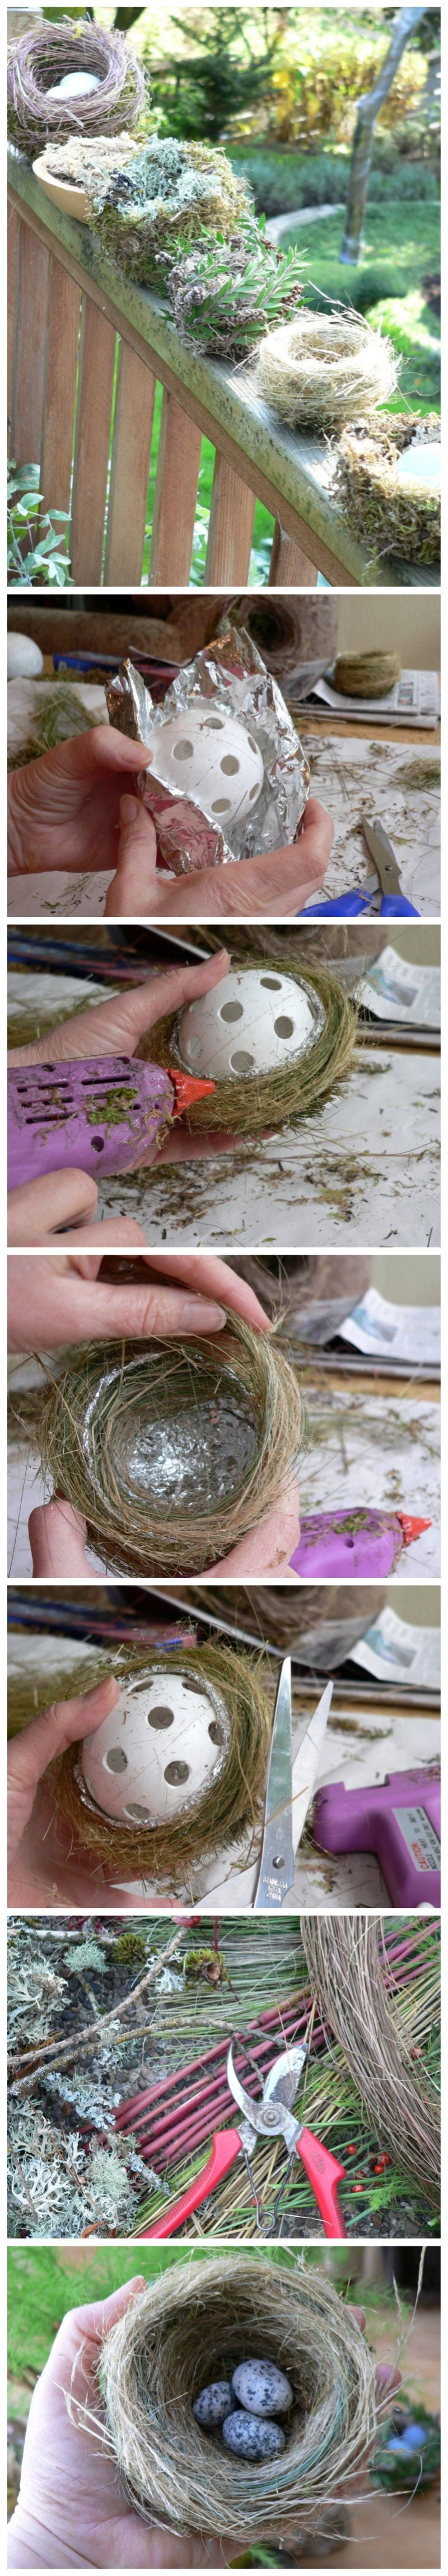 Howto make your own decorative bird nests The Pecks